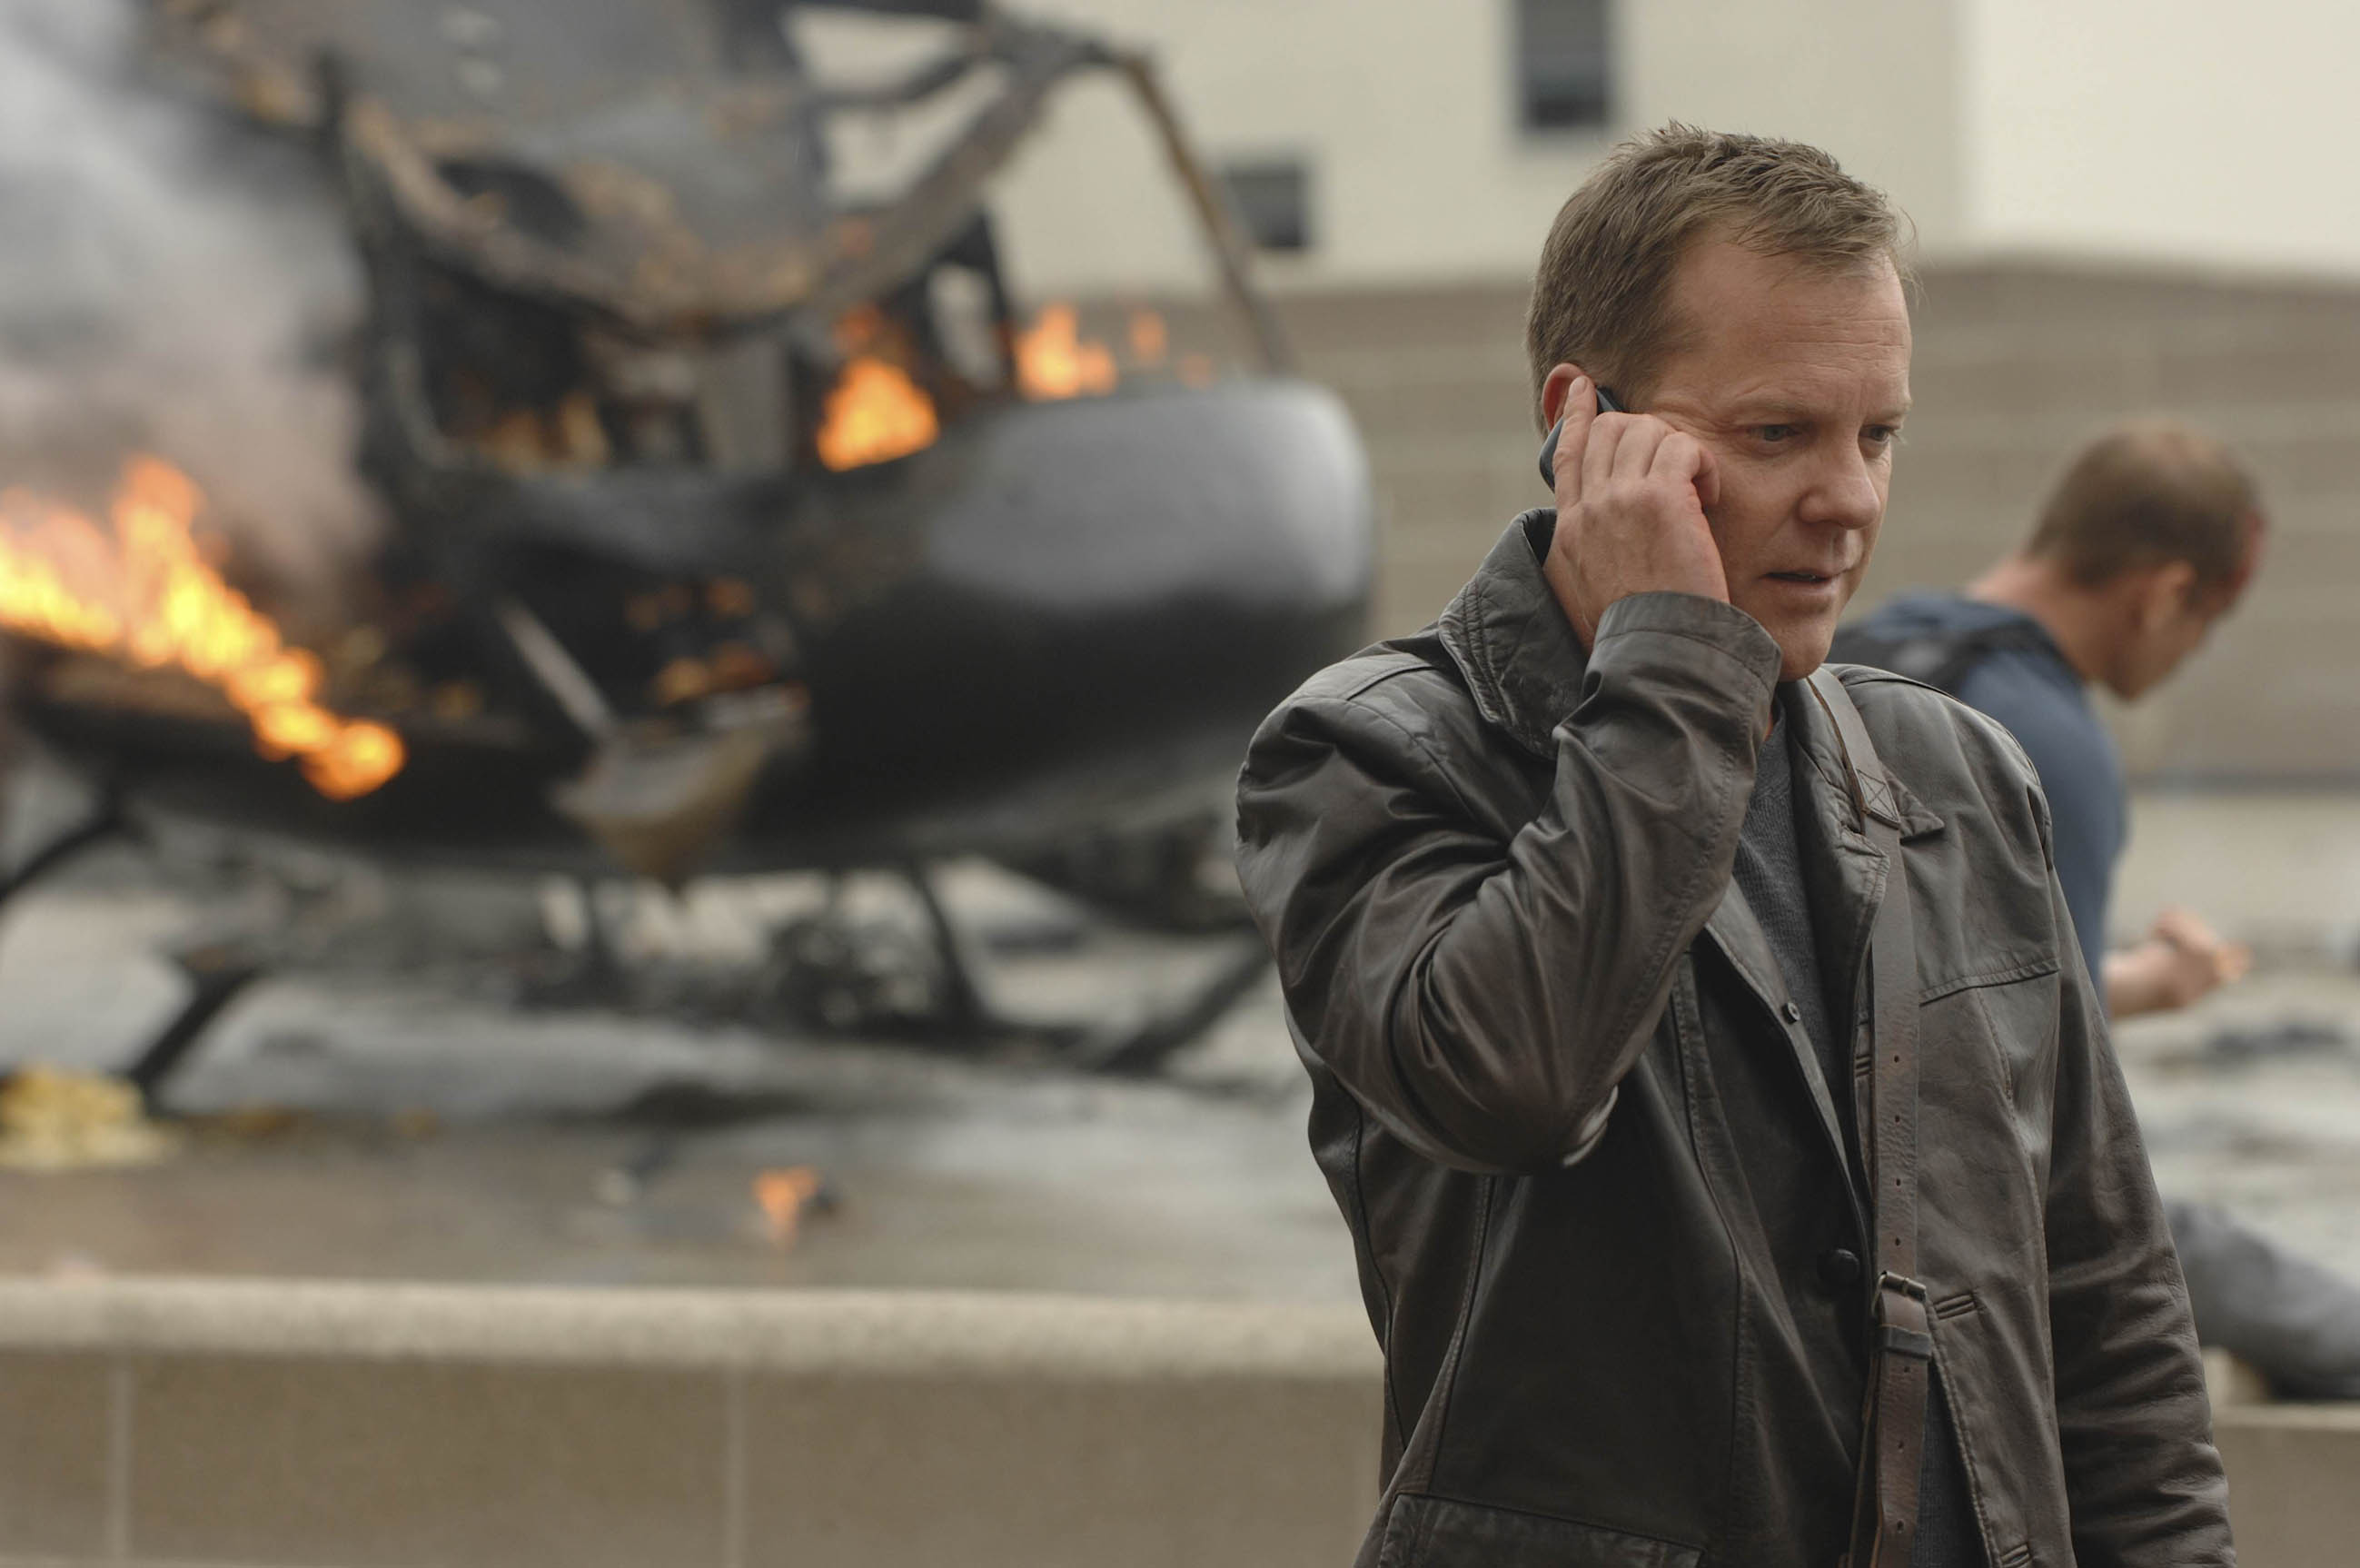 Jack Bauer's terrorist-fighting career is over for good, says 24's Kiefer Sutherland